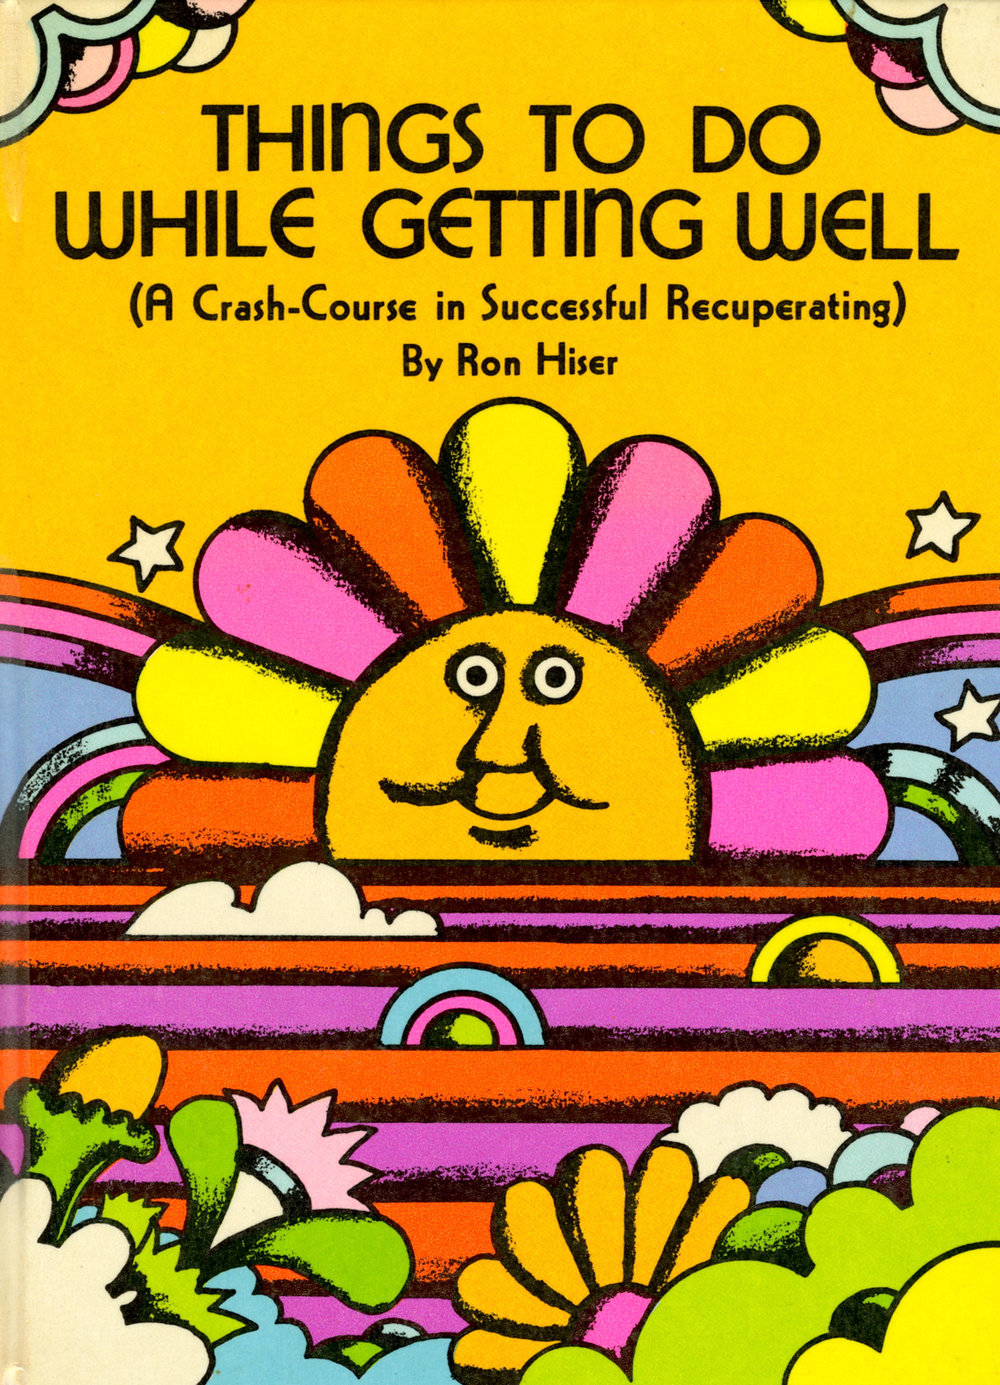 THINGS TO DO WHILE GETTING WELL